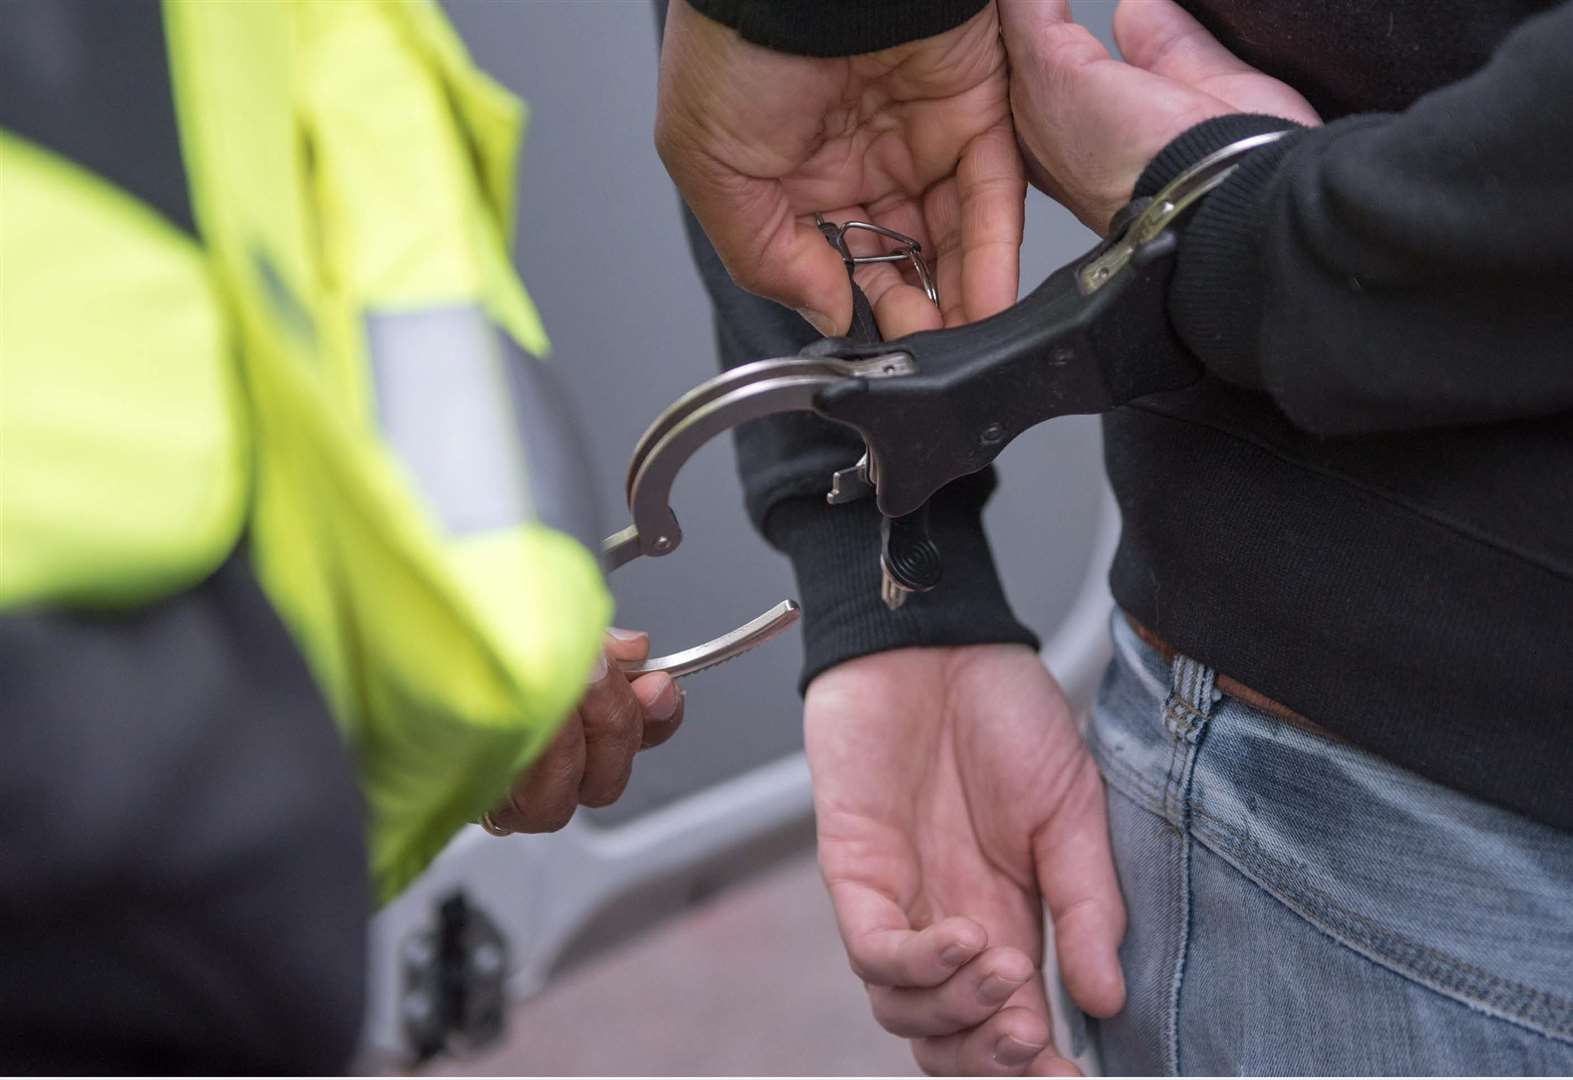 Two men charged with begging in Newmarket